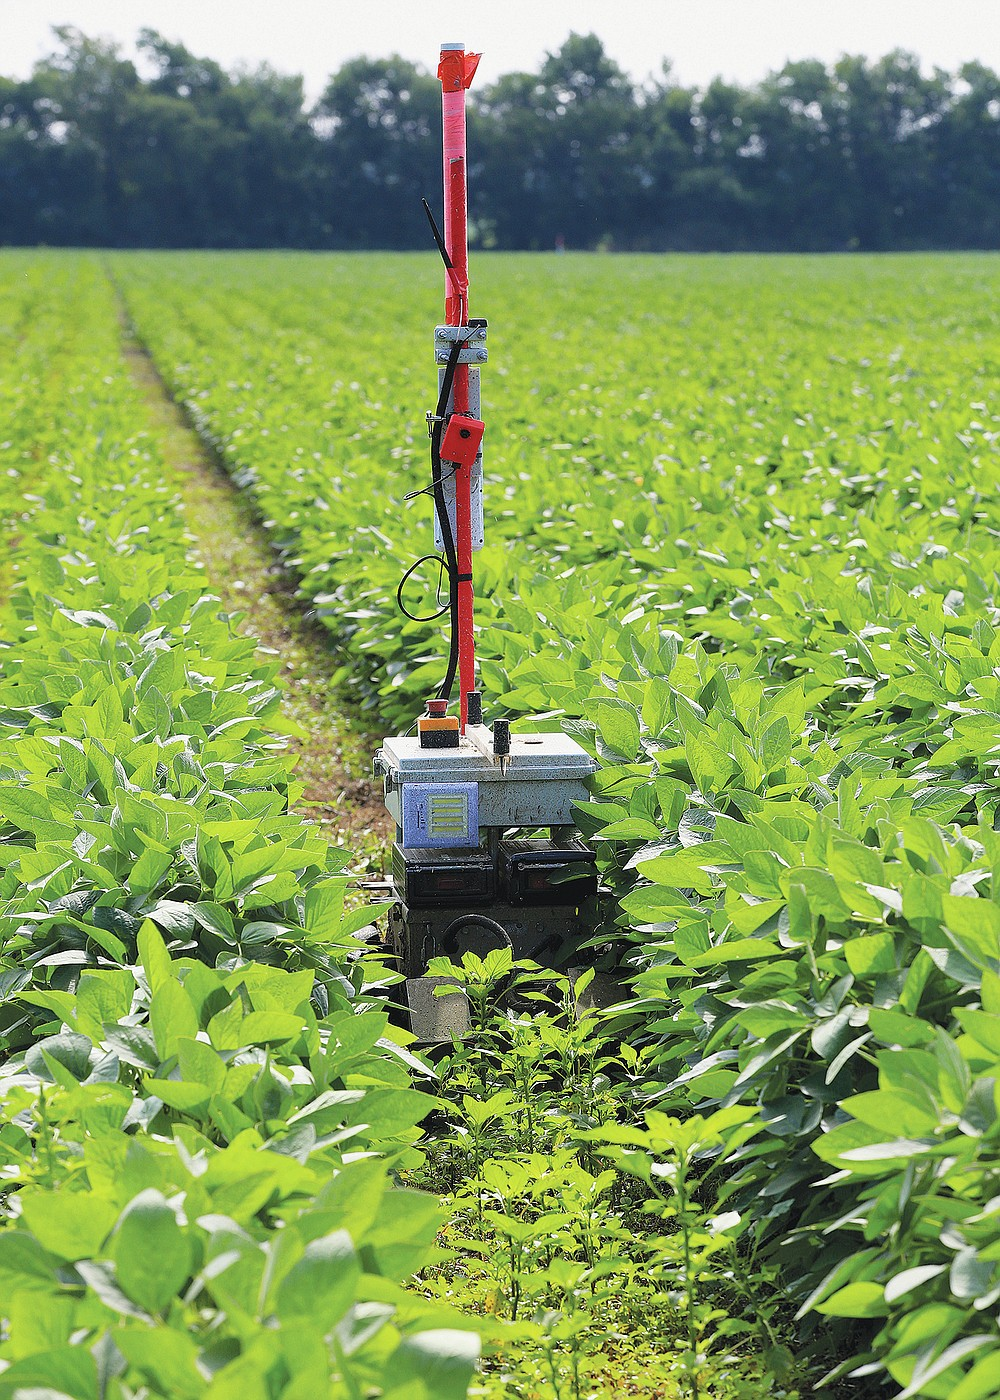 A Greenfield Robotics robot travels in between rows of soybeans as it cuts down weeds in a field near Cheney, Kan., on Tuesday, July 6, 2021. In front of the robot is the density of weeds that will be cut and behind it shows the result. (Sandra J. Milburn/The Hutchinson News via AP)